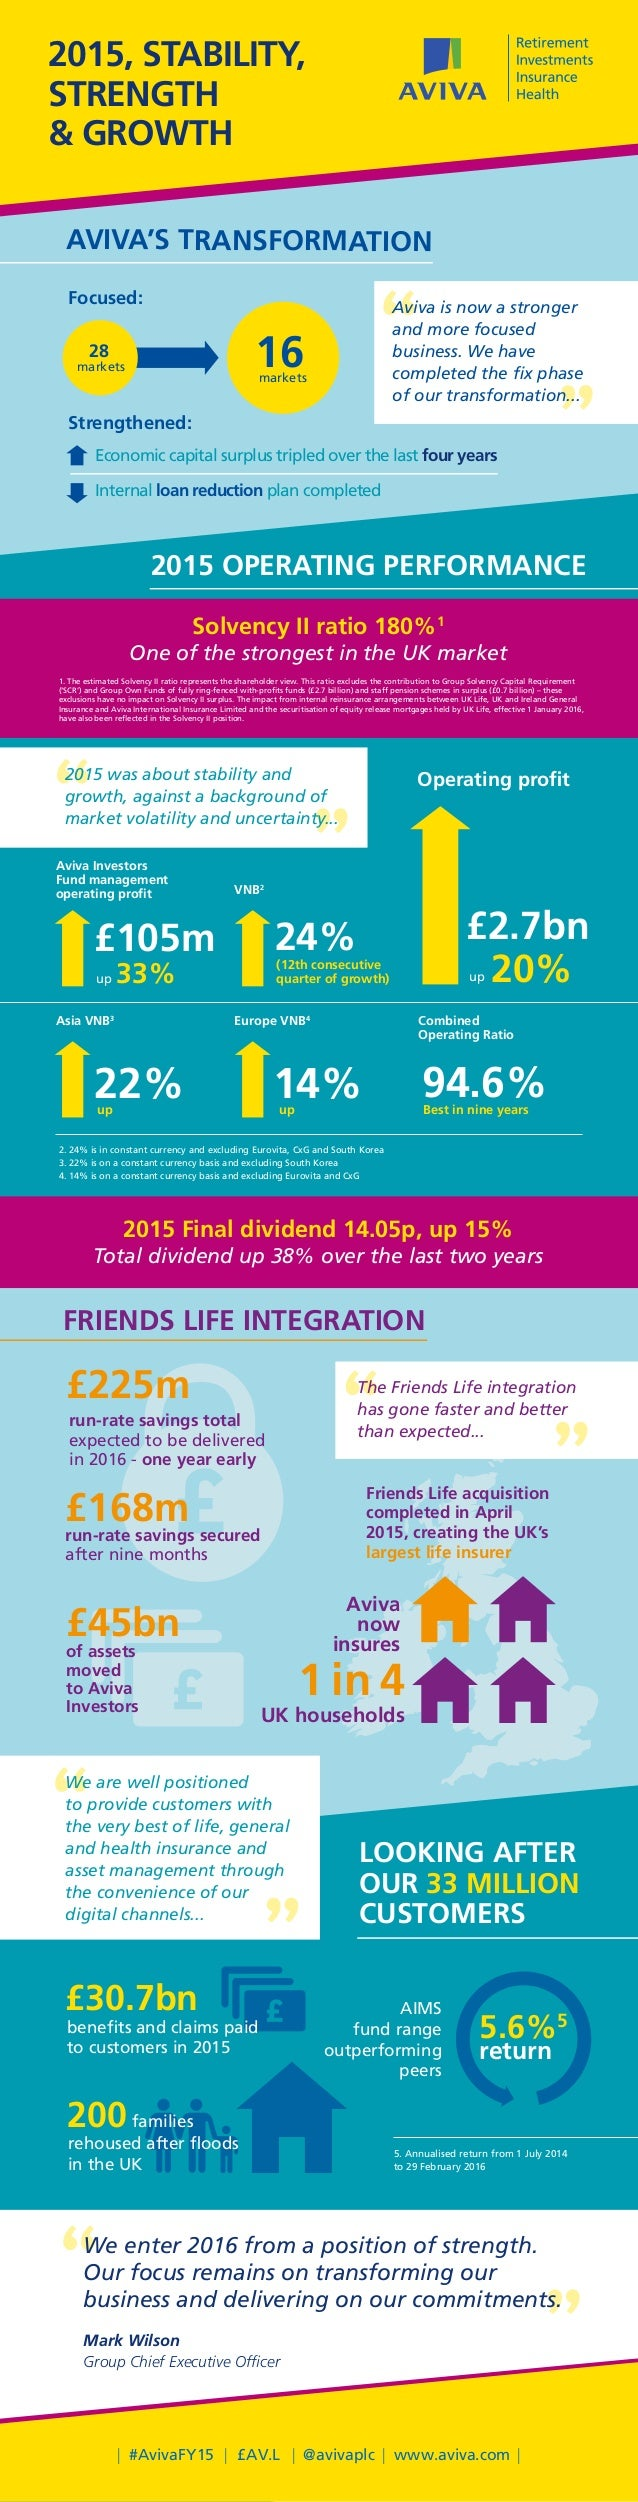 LOOKING AFTER OUR 33 MILLION CUSTOMERS 2015 Final dividend 14.05p, up 15% Total dividend up 38% over the last two years ma...